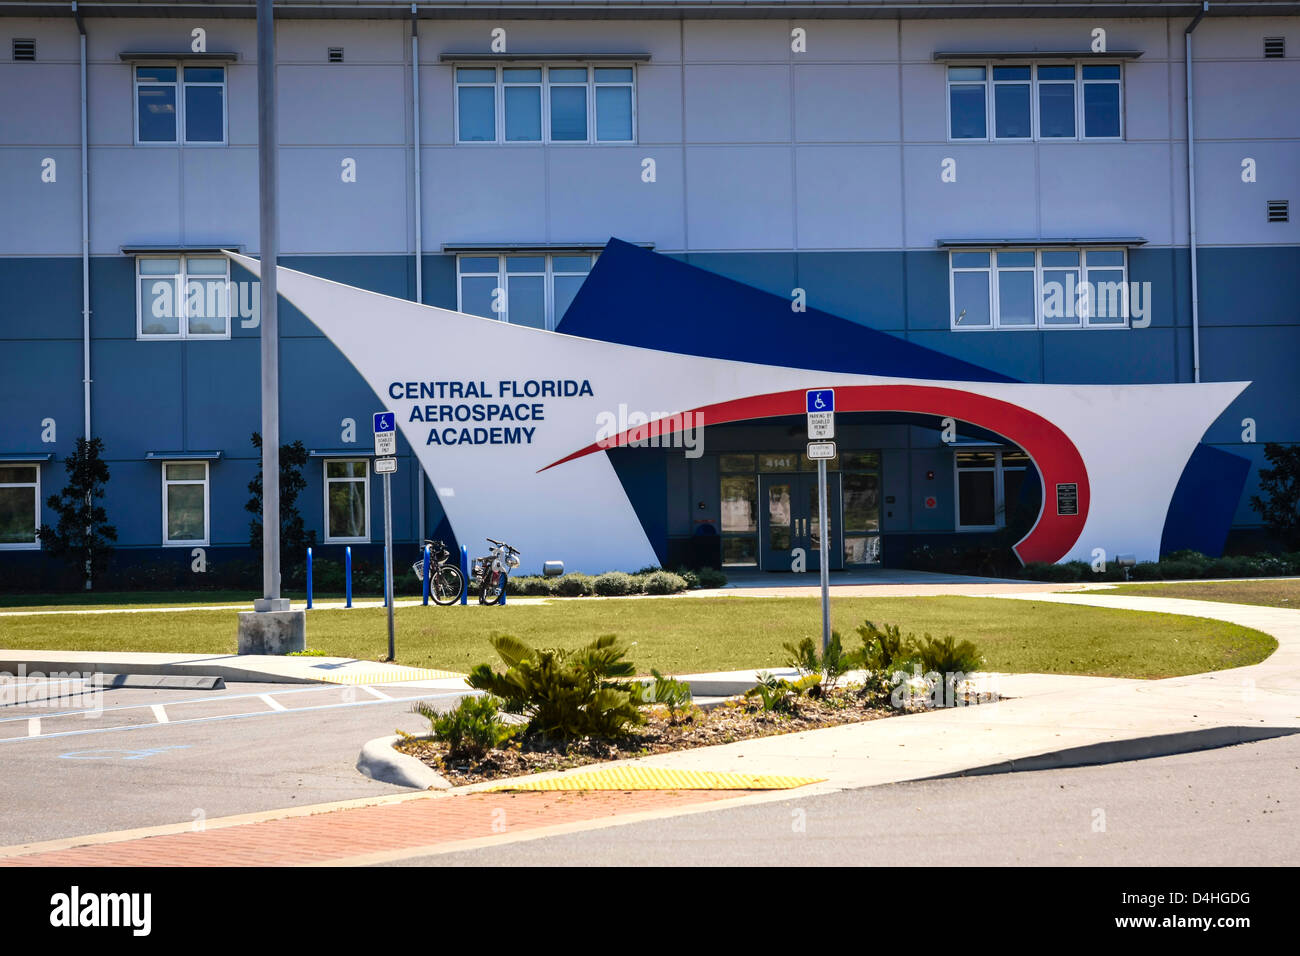 The Central Florida Aerospace Academy Building at Lakeland - Stock Image